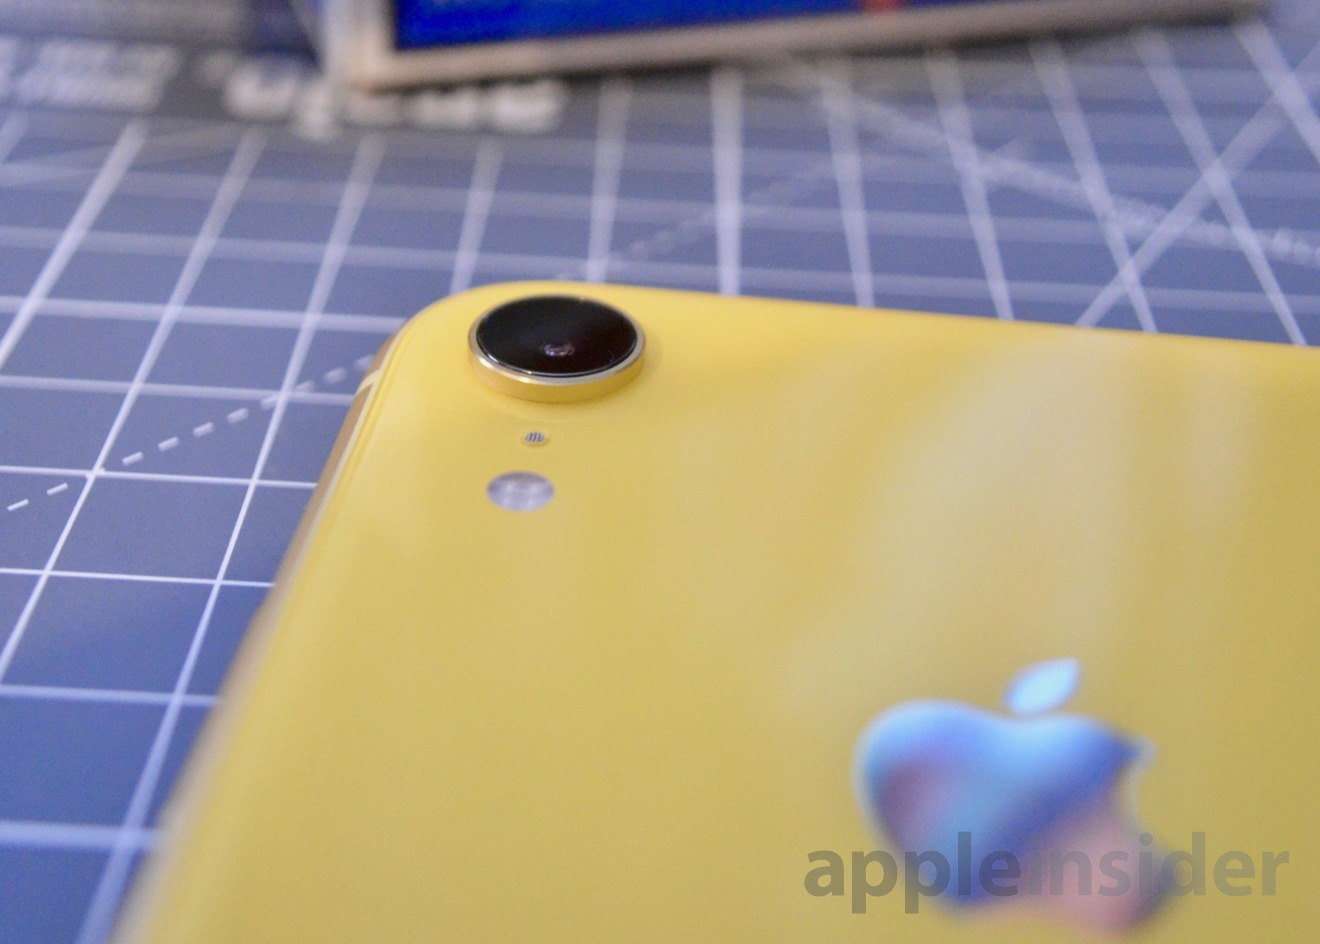 The iPhone XR's single rear camera